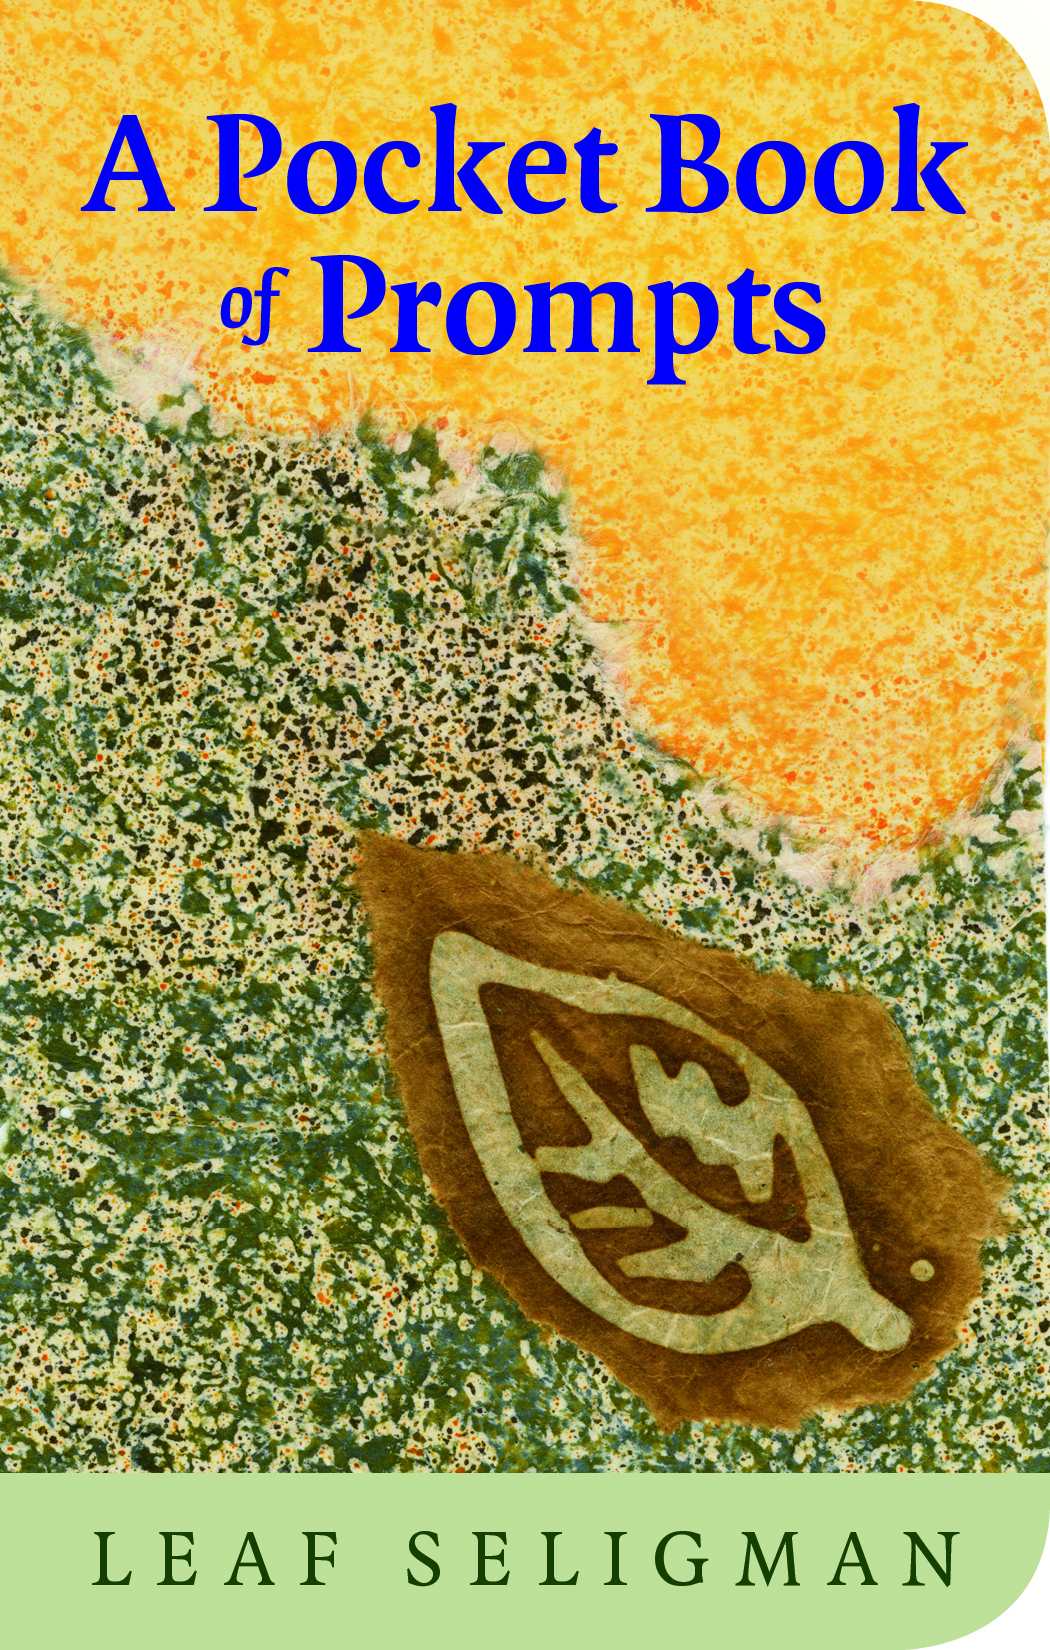 A Pocket Book of Prompts